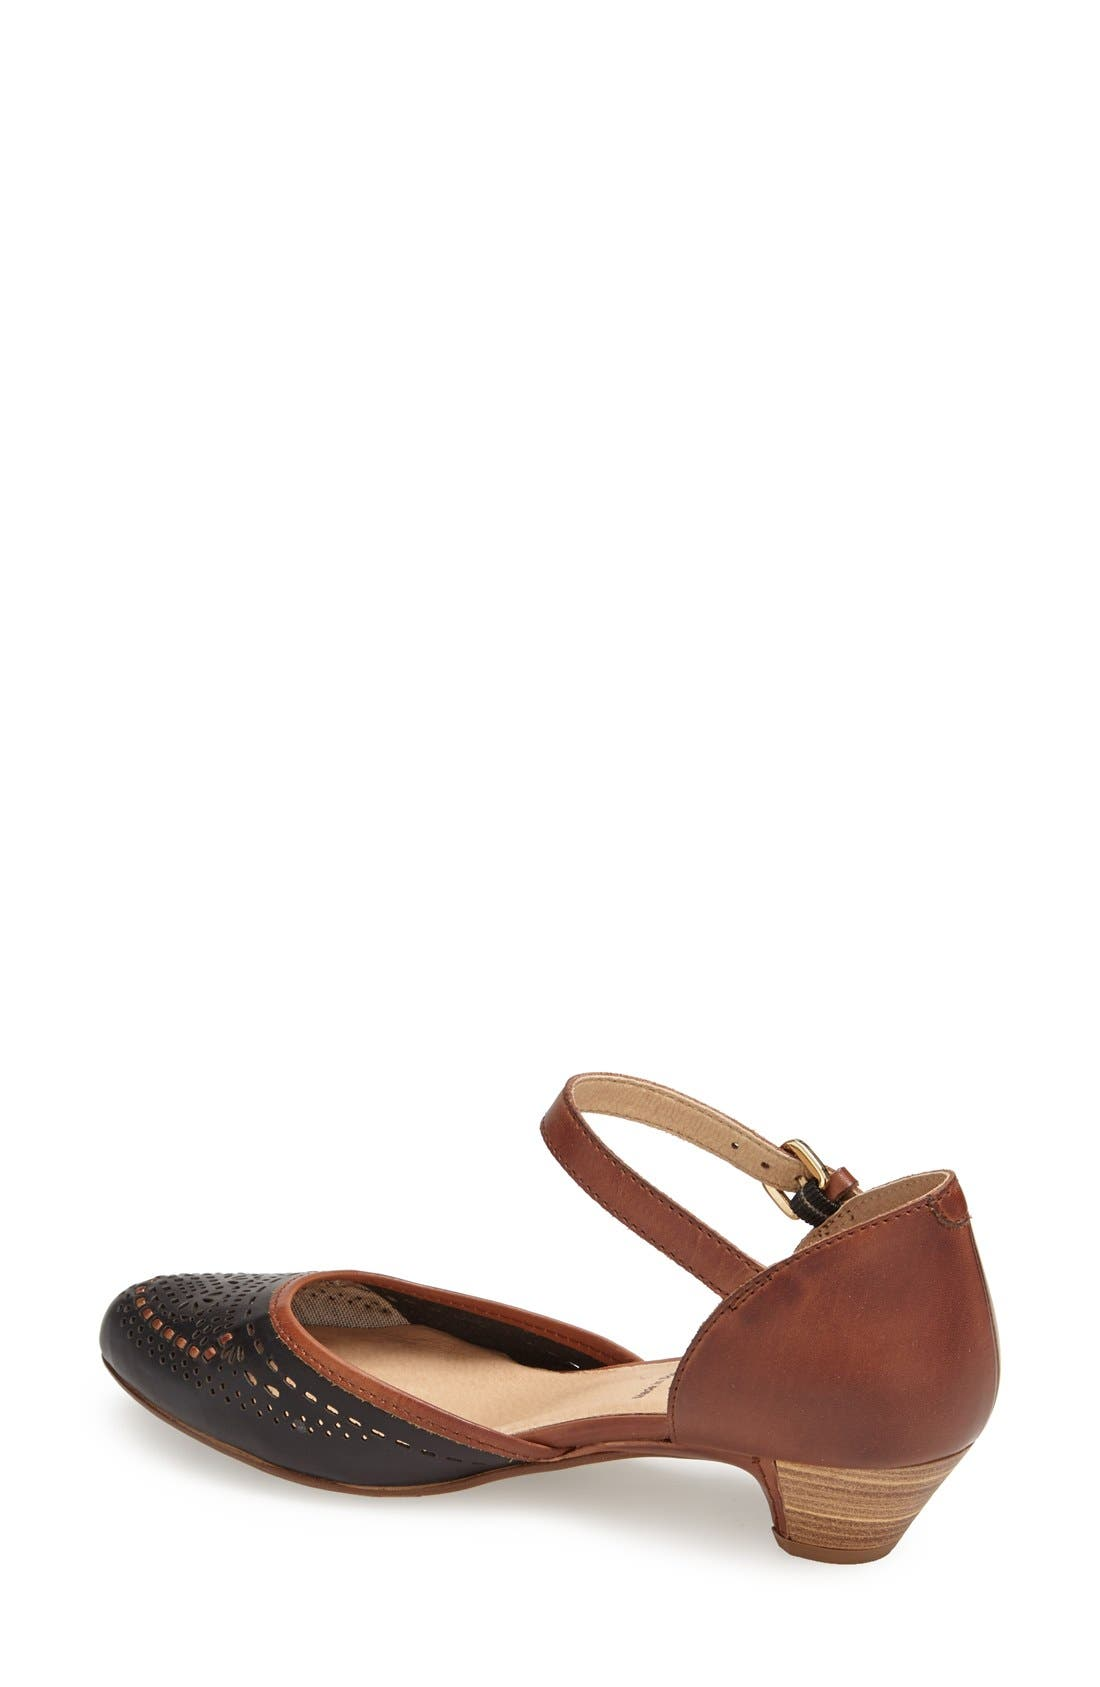 'Elba' Perforated Leather Ankle Strap Sandal,                             Alternate thumbnail 2, color,                             Black Leather